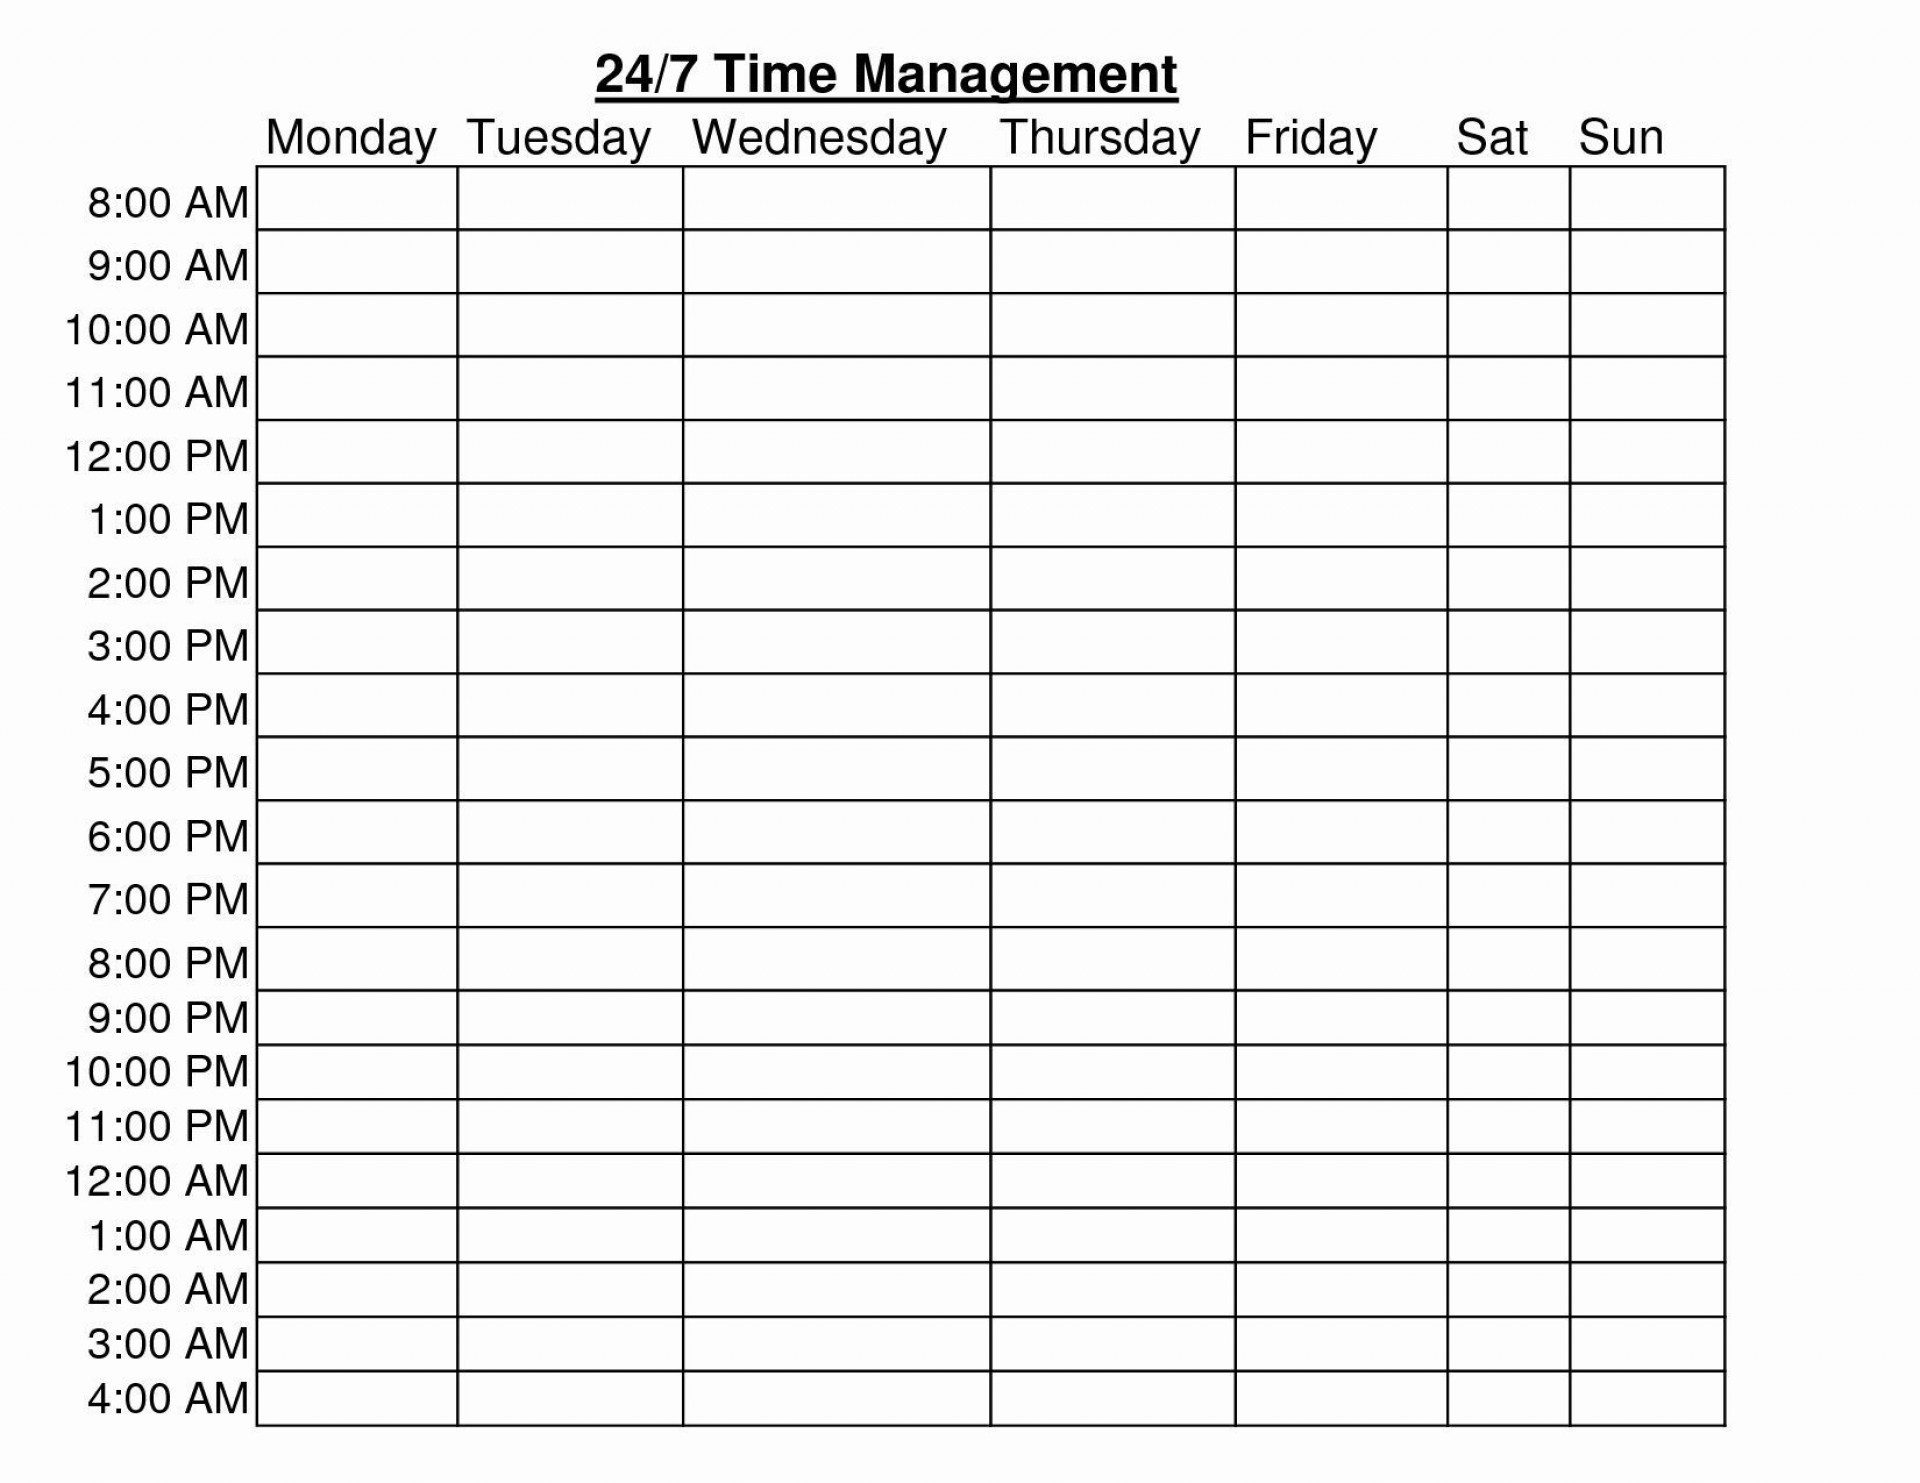 002 Excellent 24 Hour Work Schedule Template Photo  7 Day1920